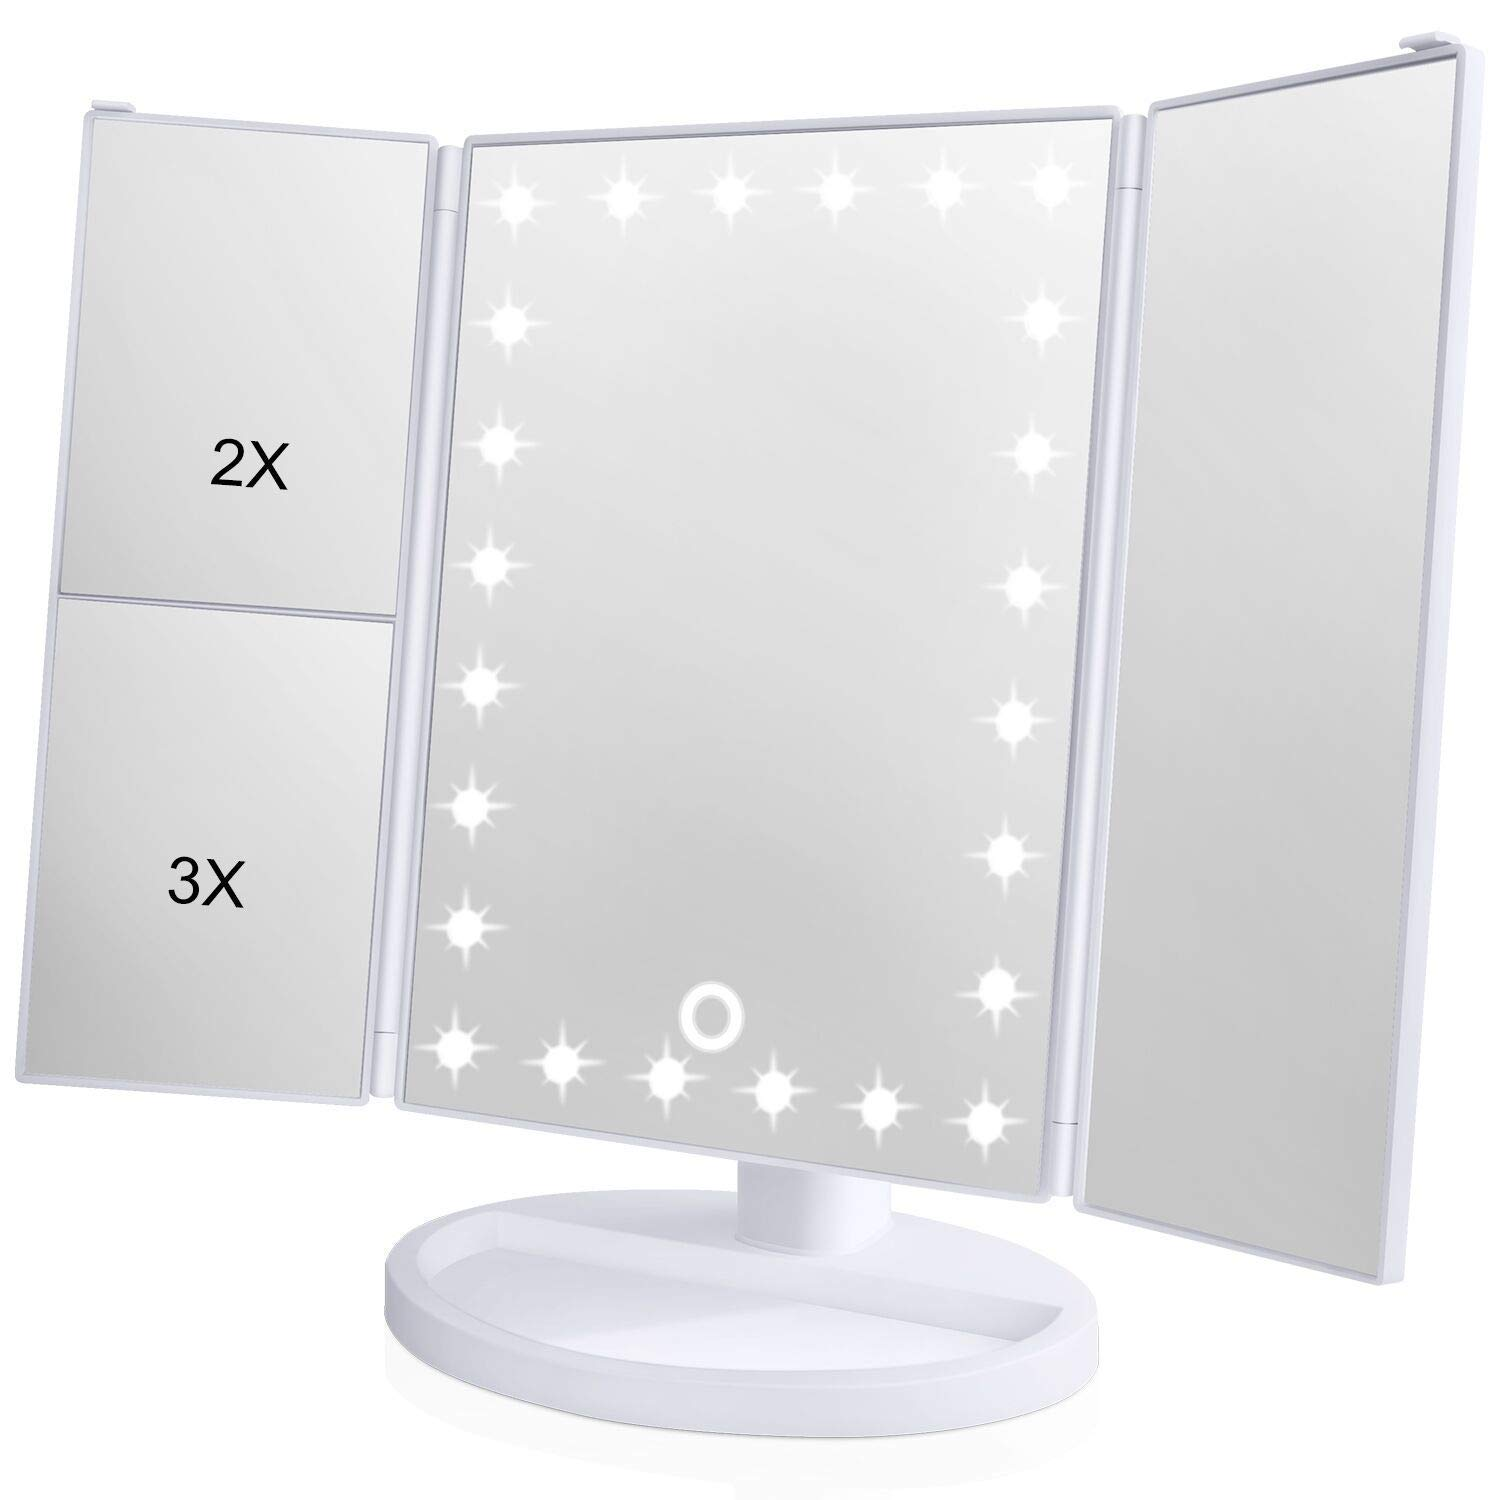 KOOLORBS Makeup 21 Led Vanity Mirror with Lights, 1x/2x/3x Magnification, Touch Screen Switch, 180 Degree Rotation , Dual Power Supply White